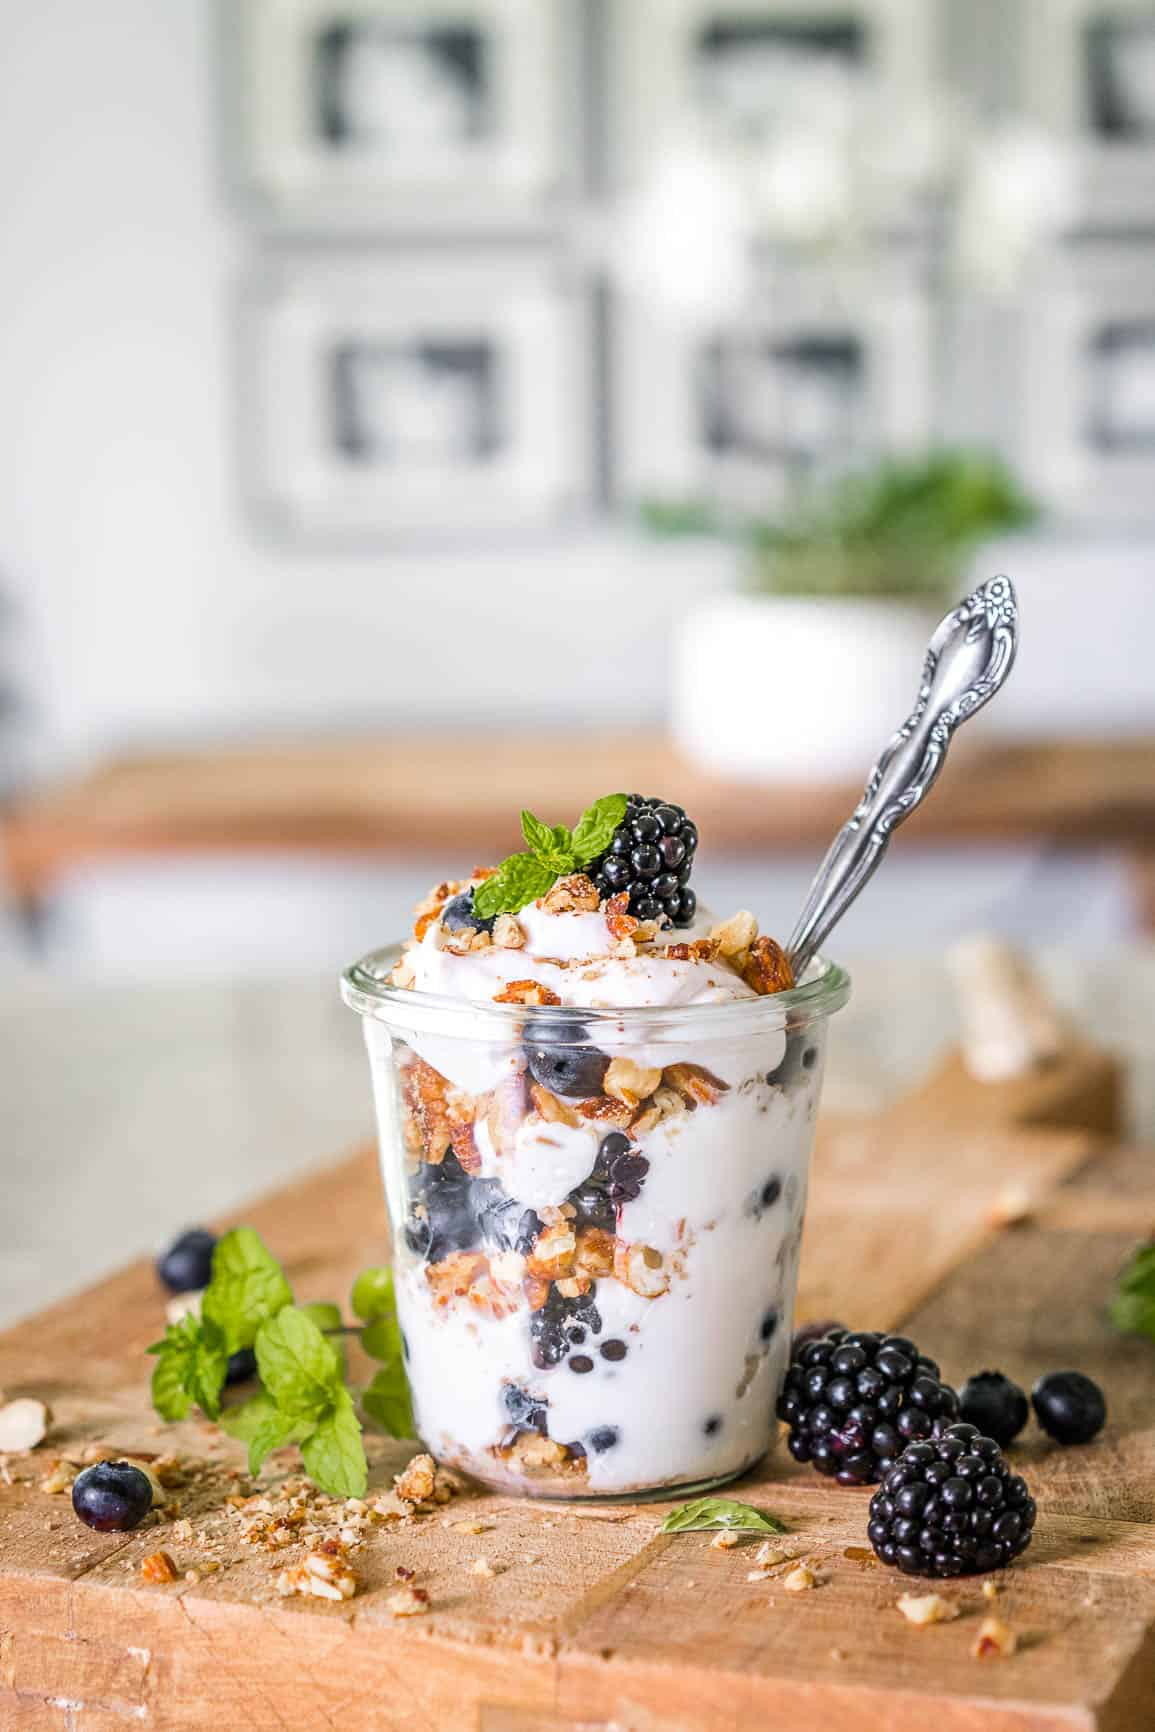 Keto Low Carb Breakfast Yogurt Parfait Yogurt Parfait